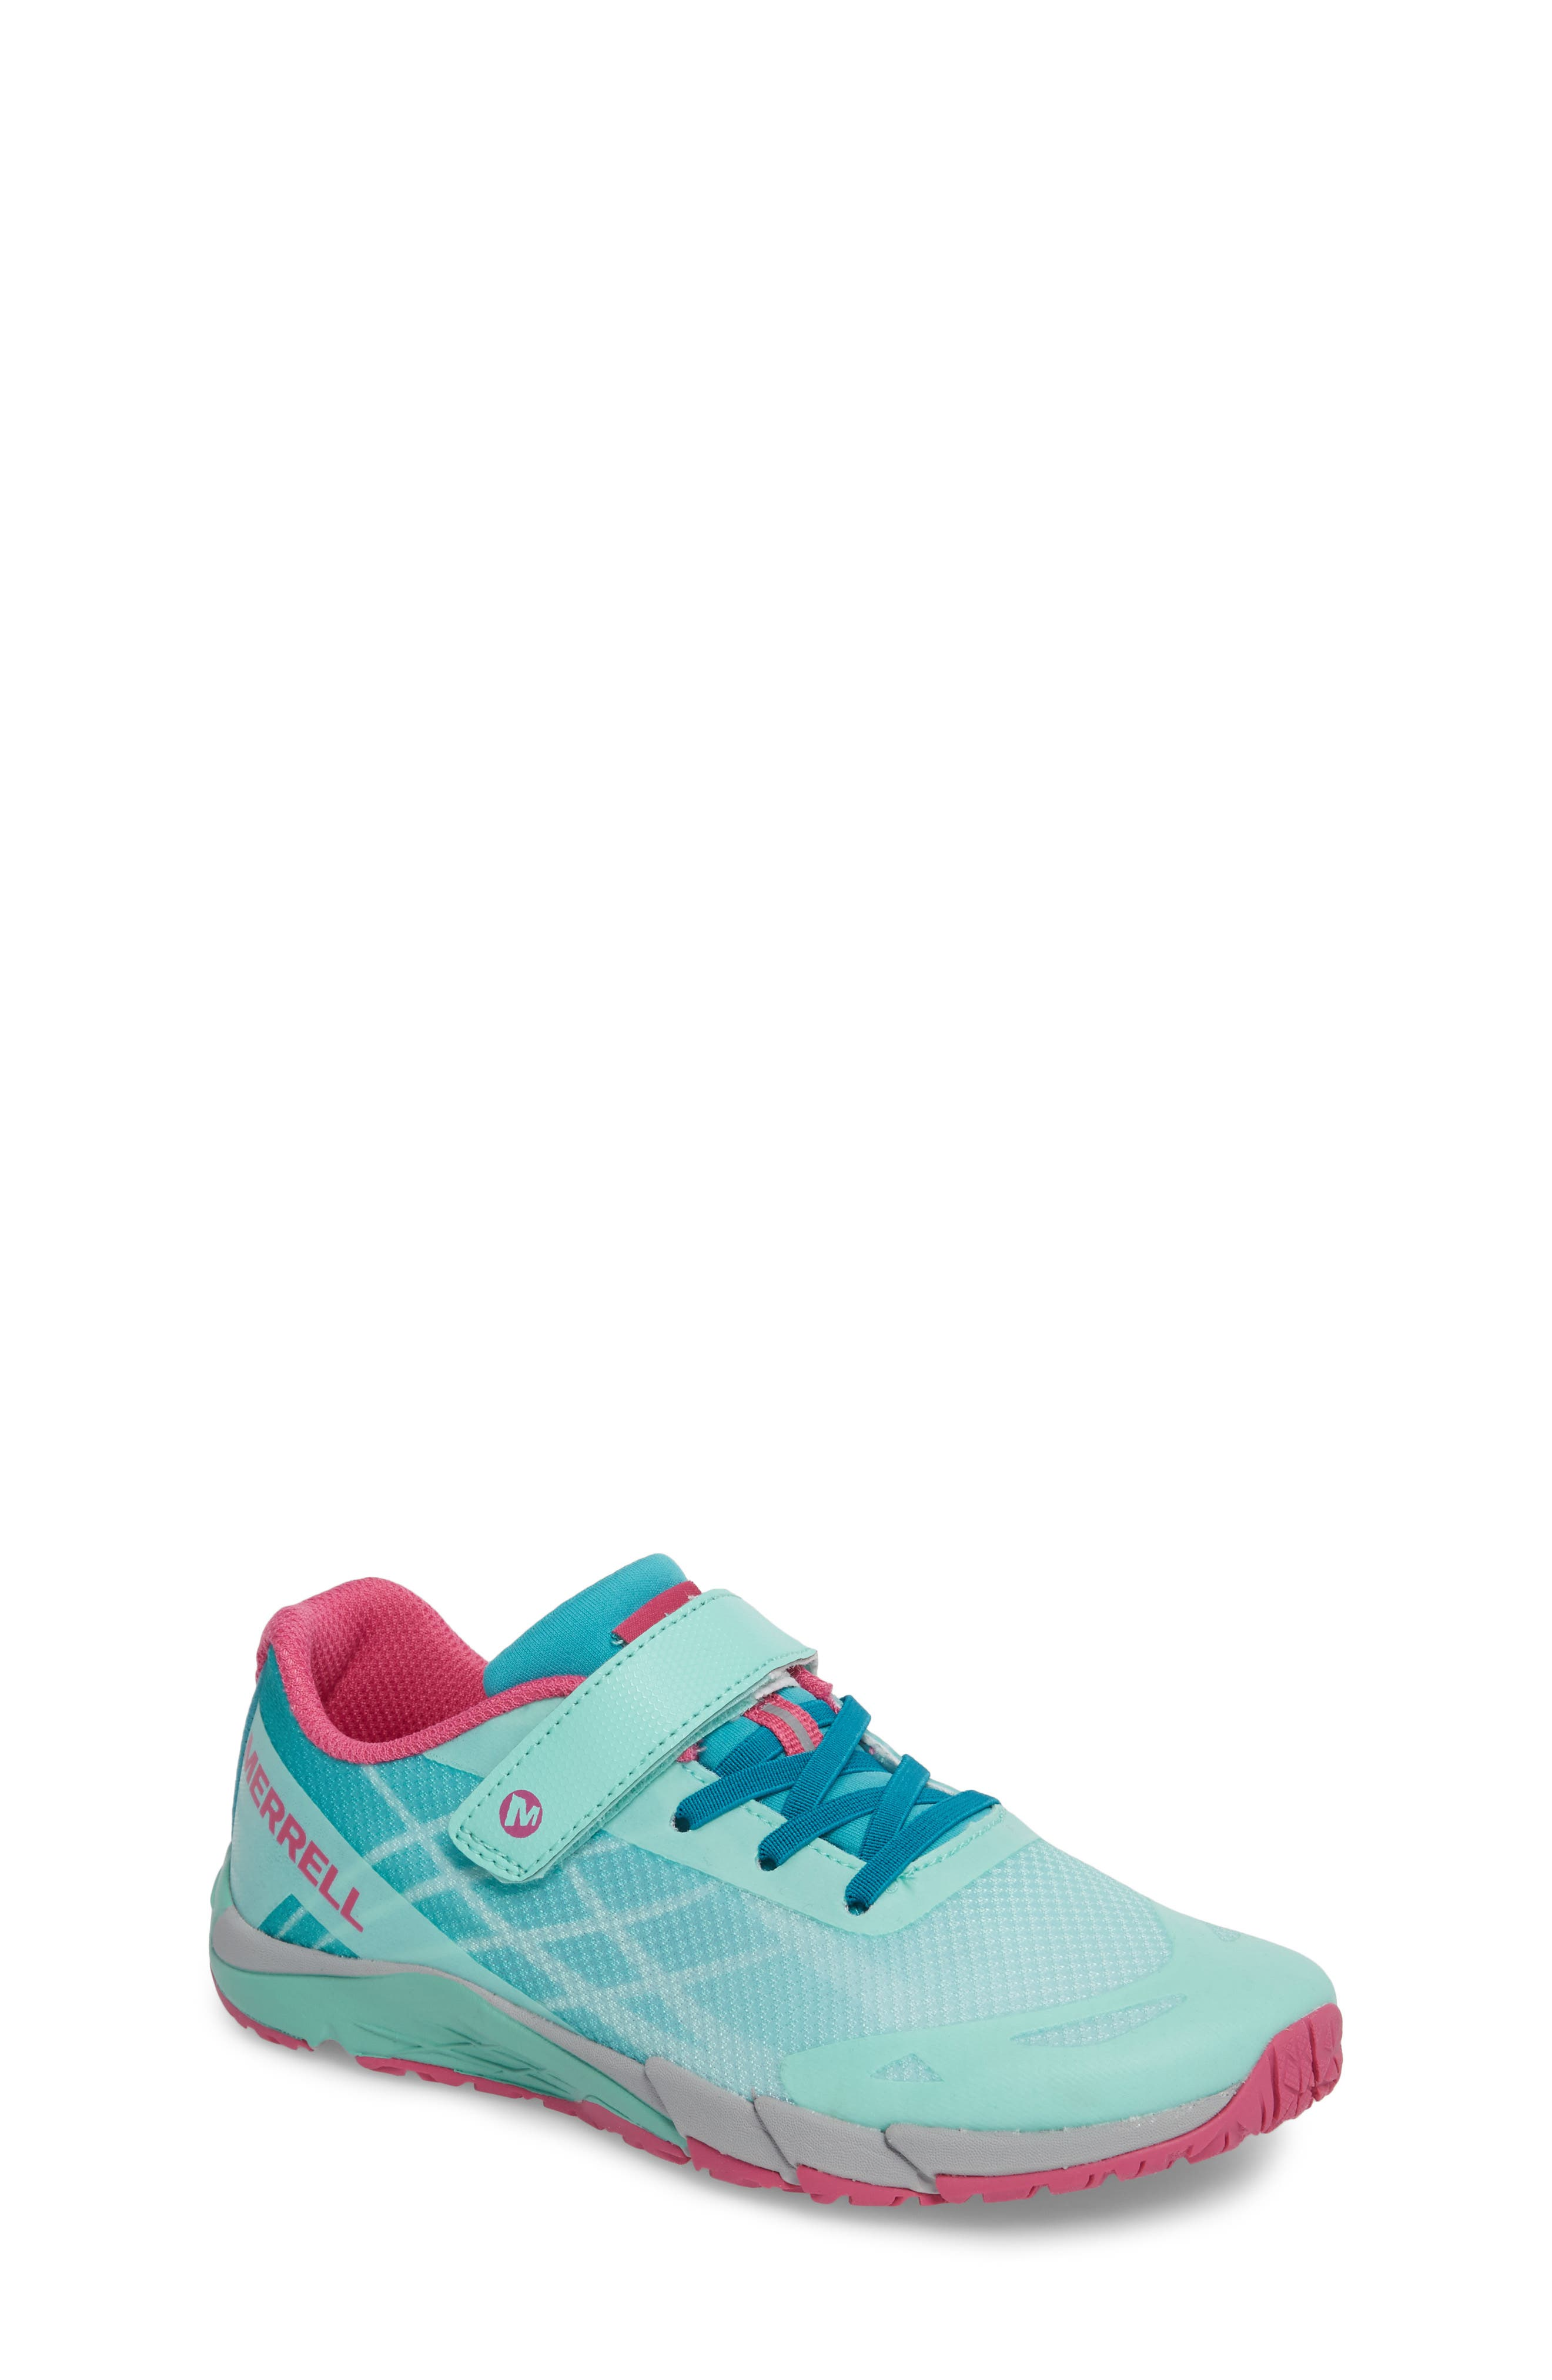 Bare Access Sneaker,                         Main,                         color, Turquoise/ Berry